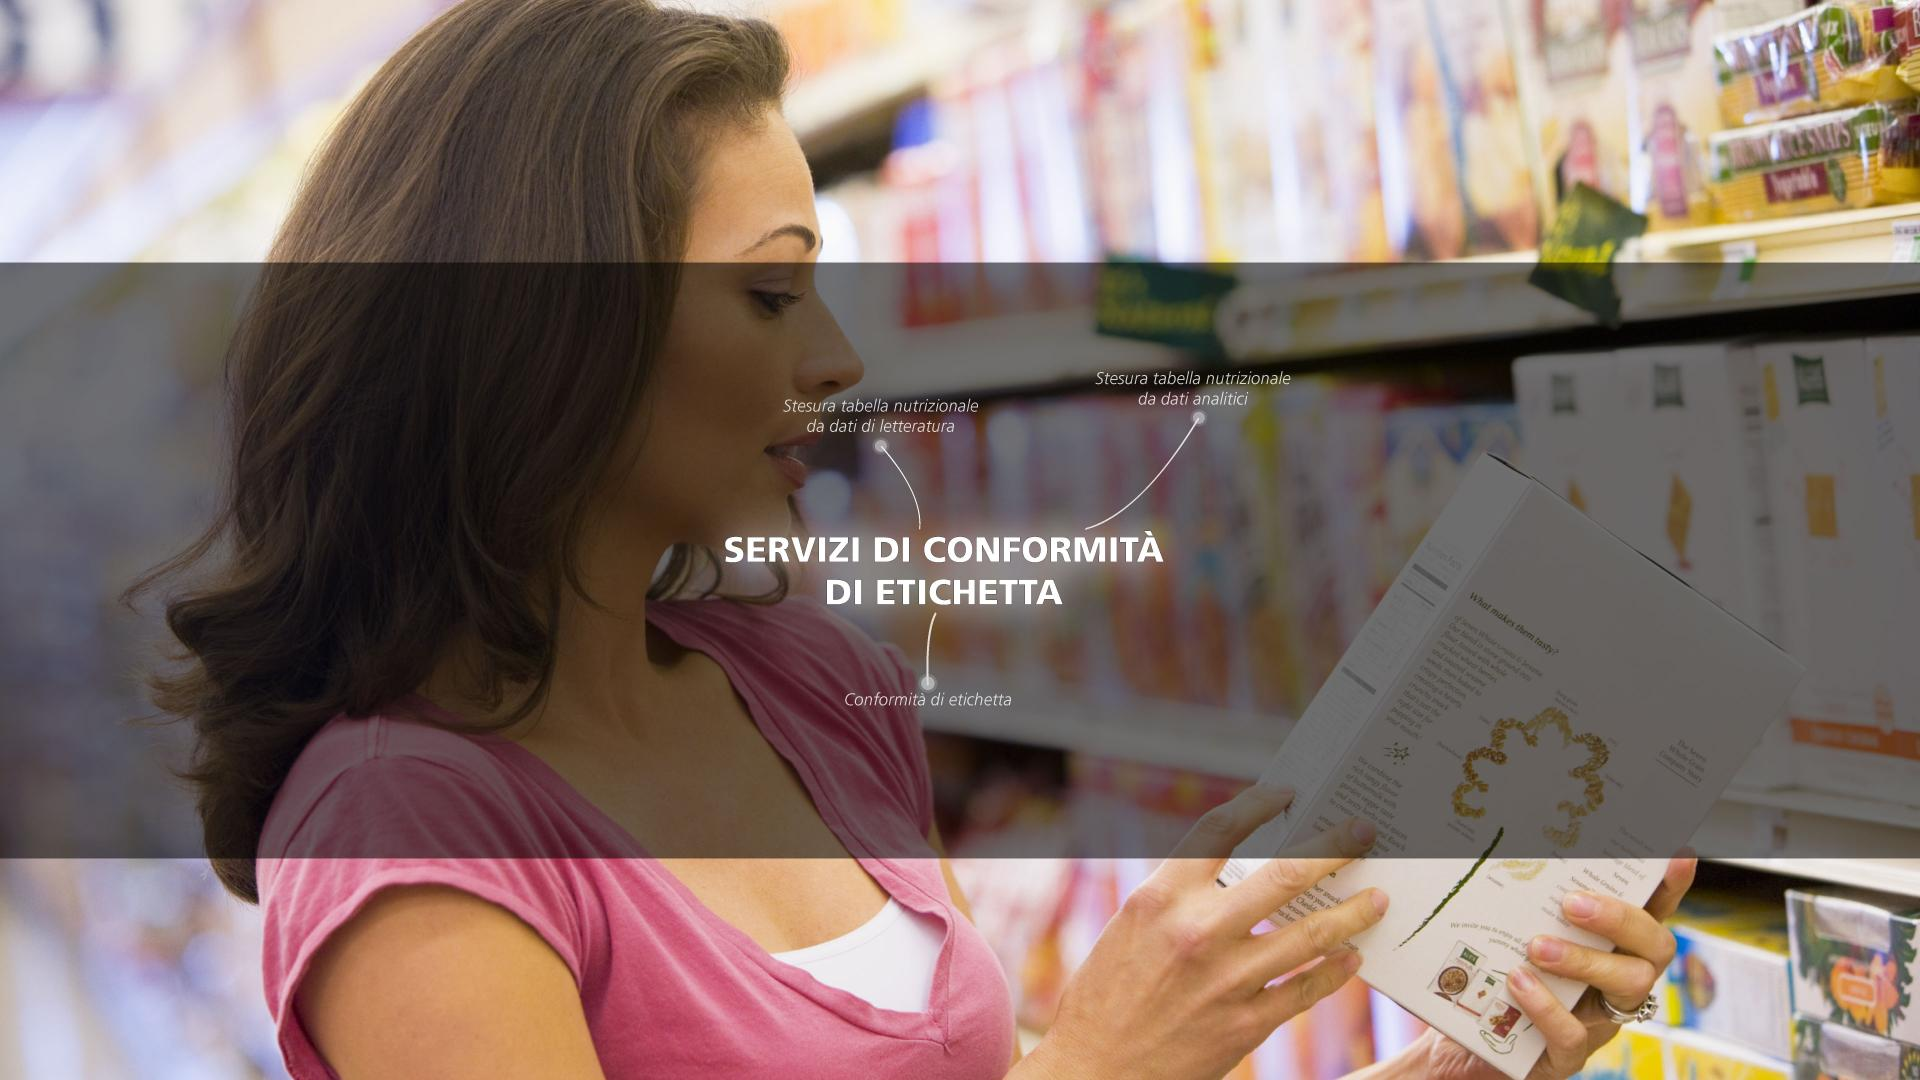 Mérieux NutriSciences - Labeling and Regulatory - Stesura tabella nutrizionale da dati analitici